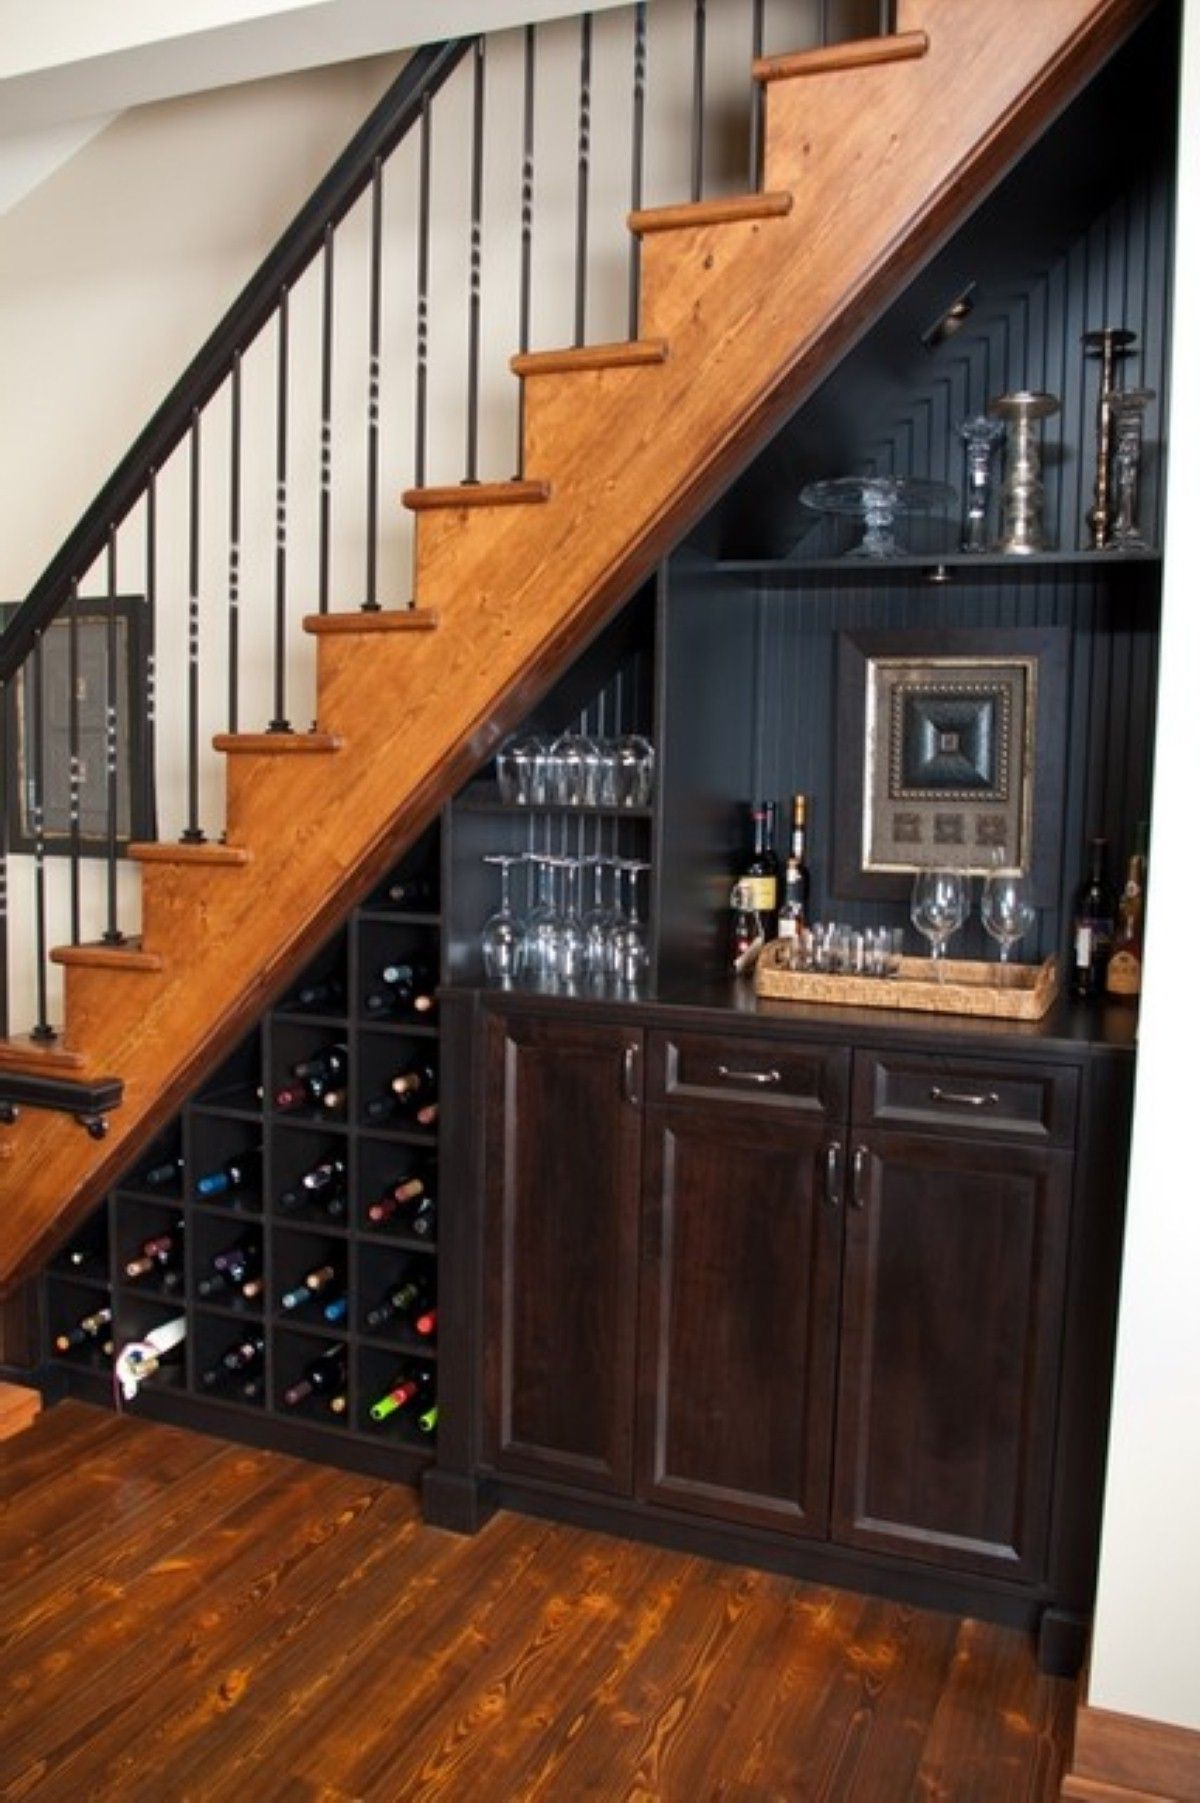 Maximizing Limited Space In Awesome Way With Mini Bar Under Stairs Stairs Pinterest